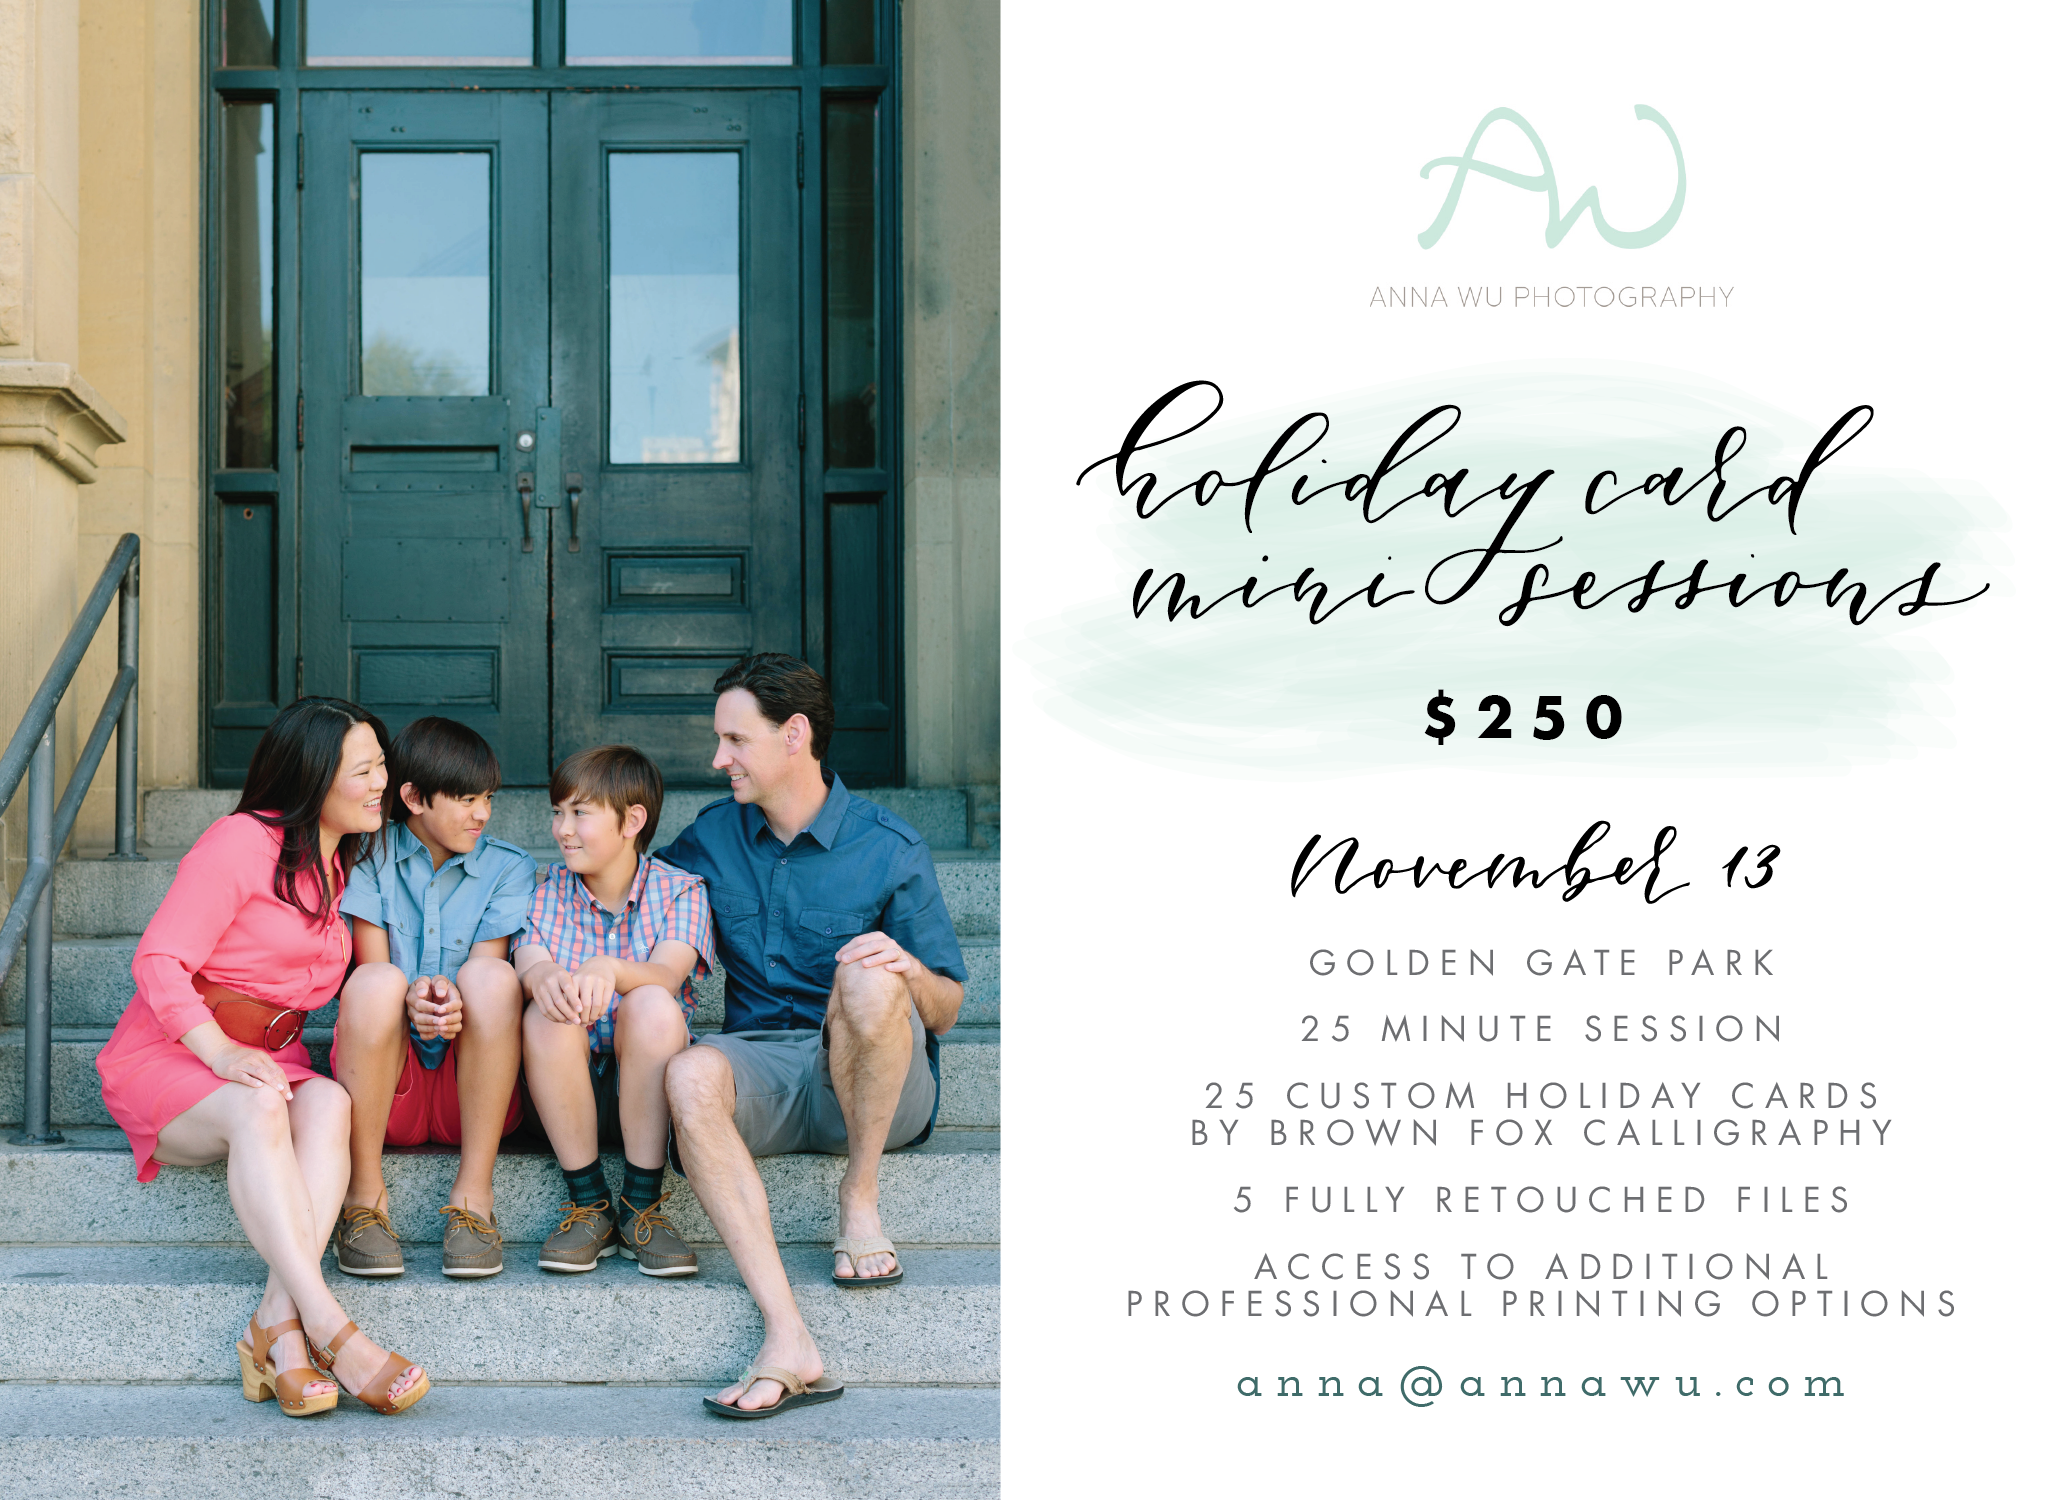 San Francisco Holiday Card Mini Sessions 2016 | Anna Wu Photography & Brown Fox Calligraphy